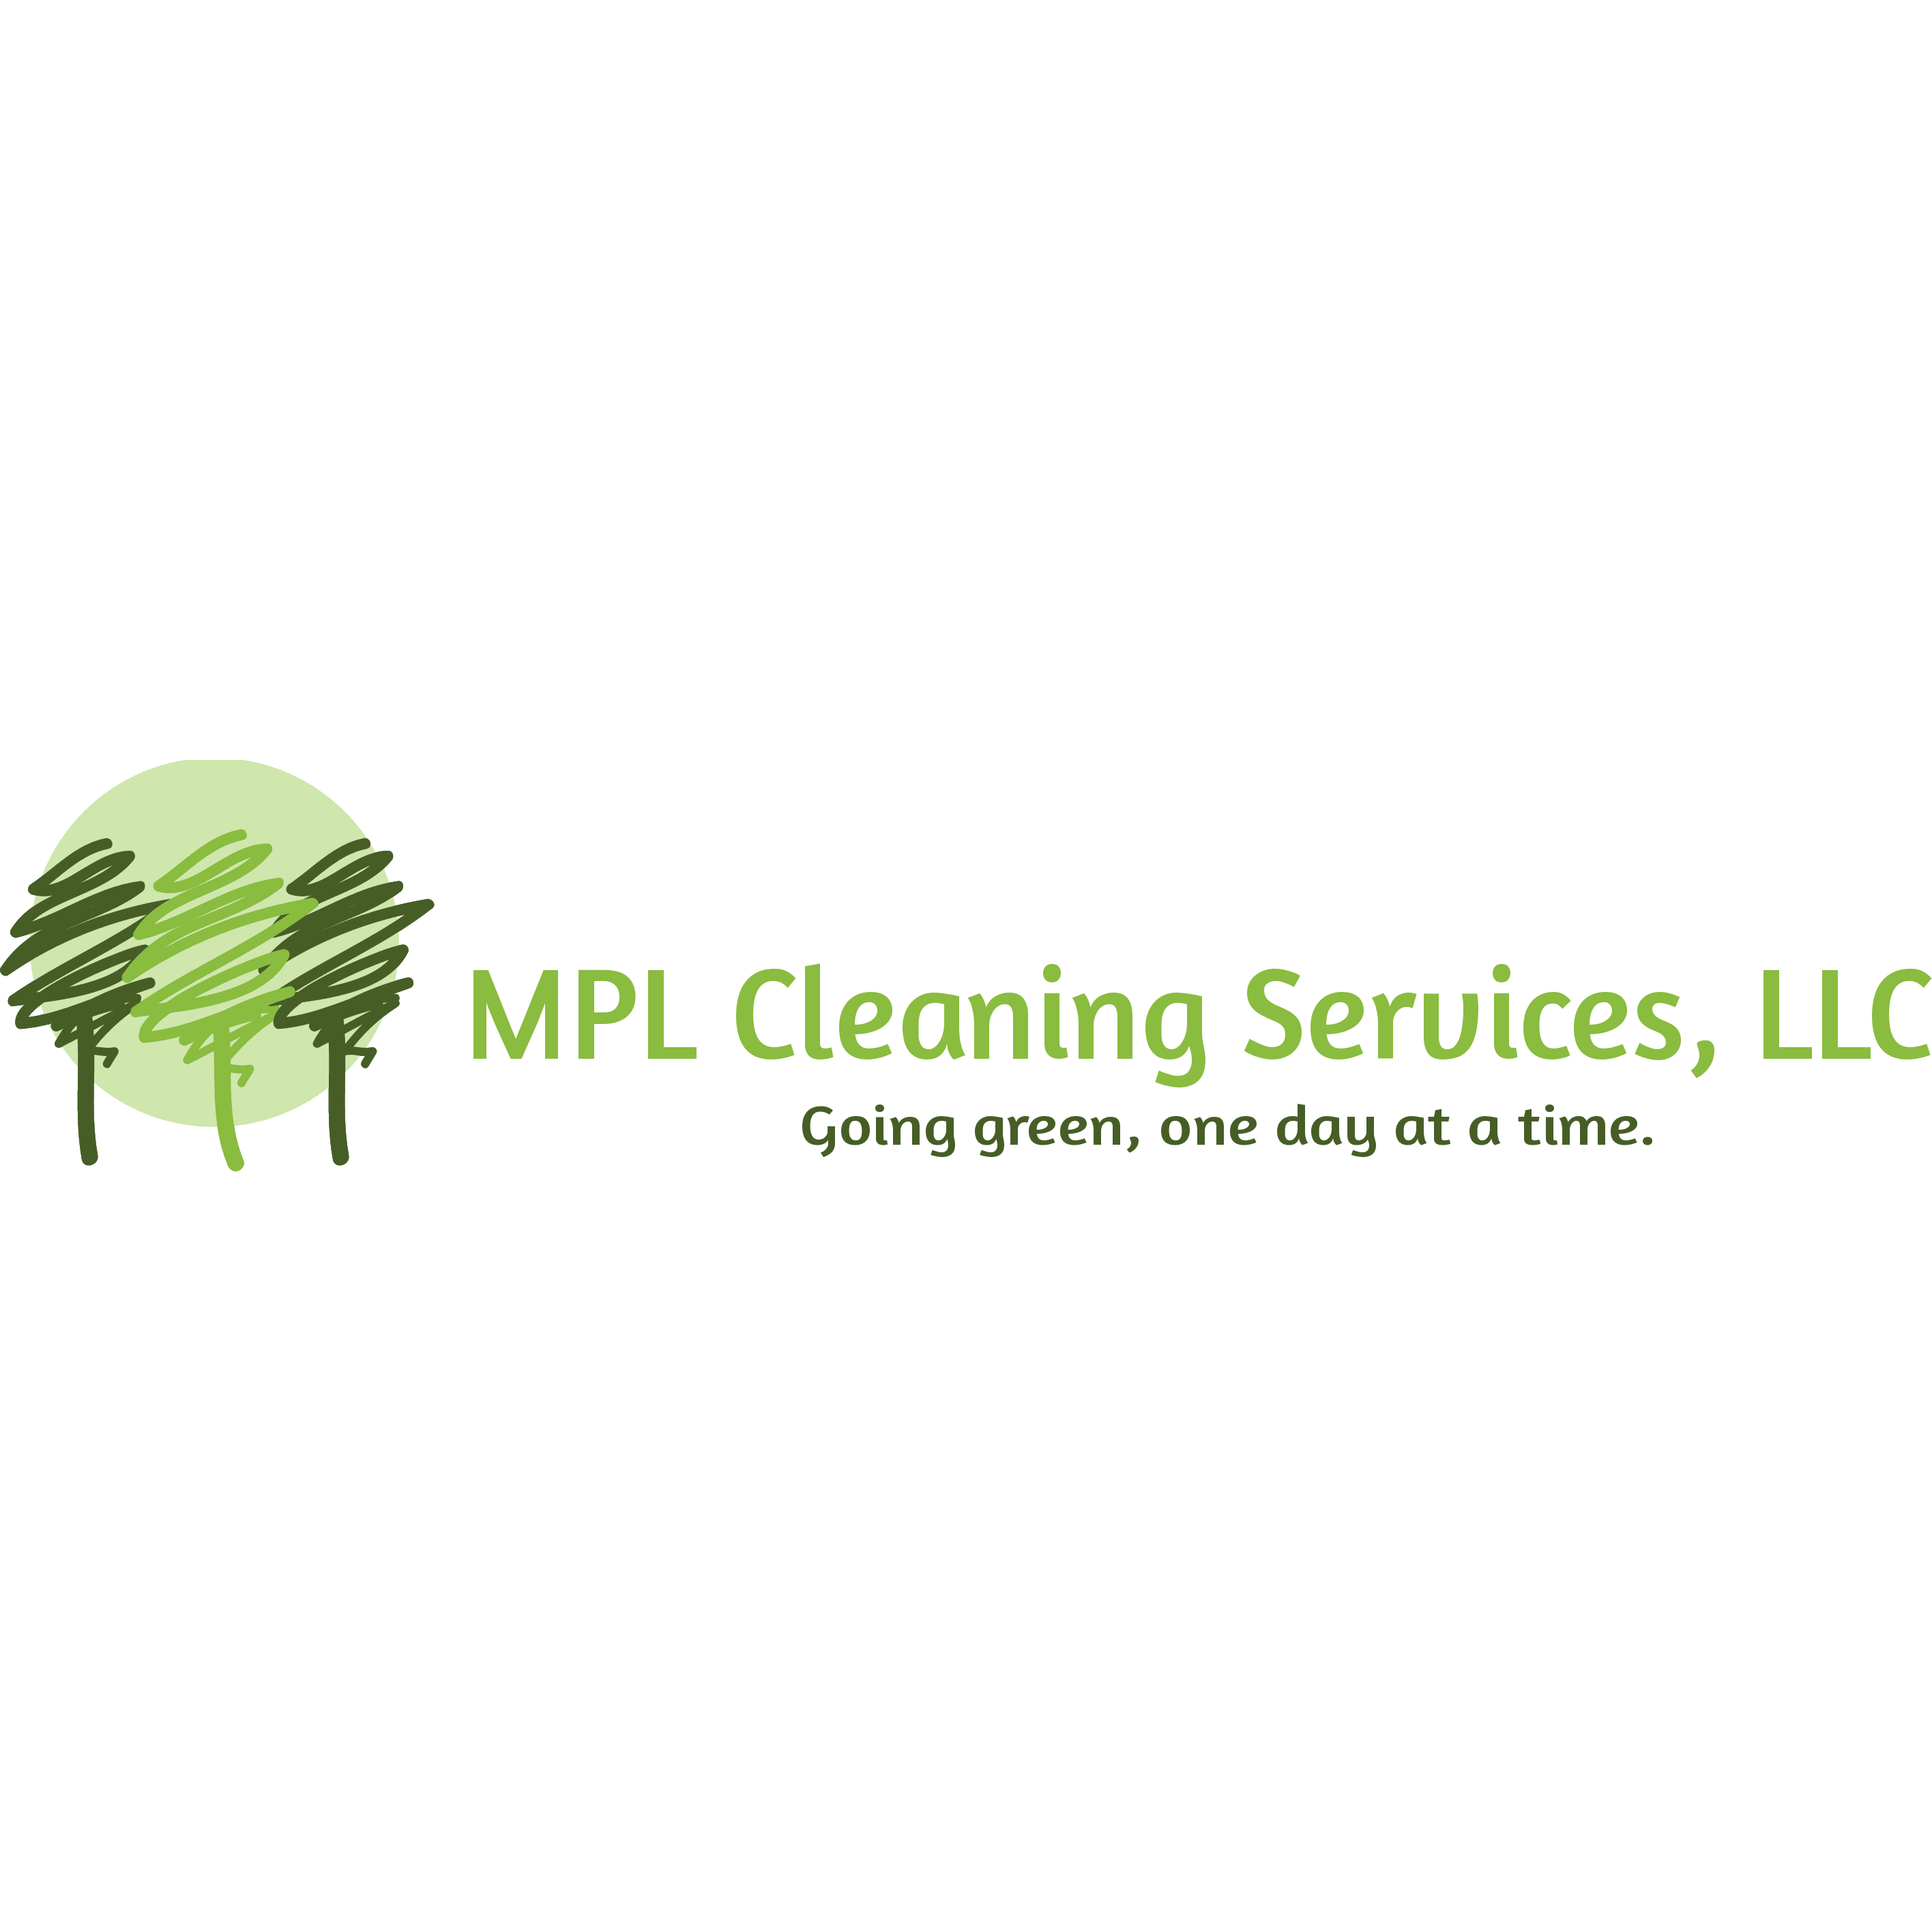 MPL Cleaning Services, LLC